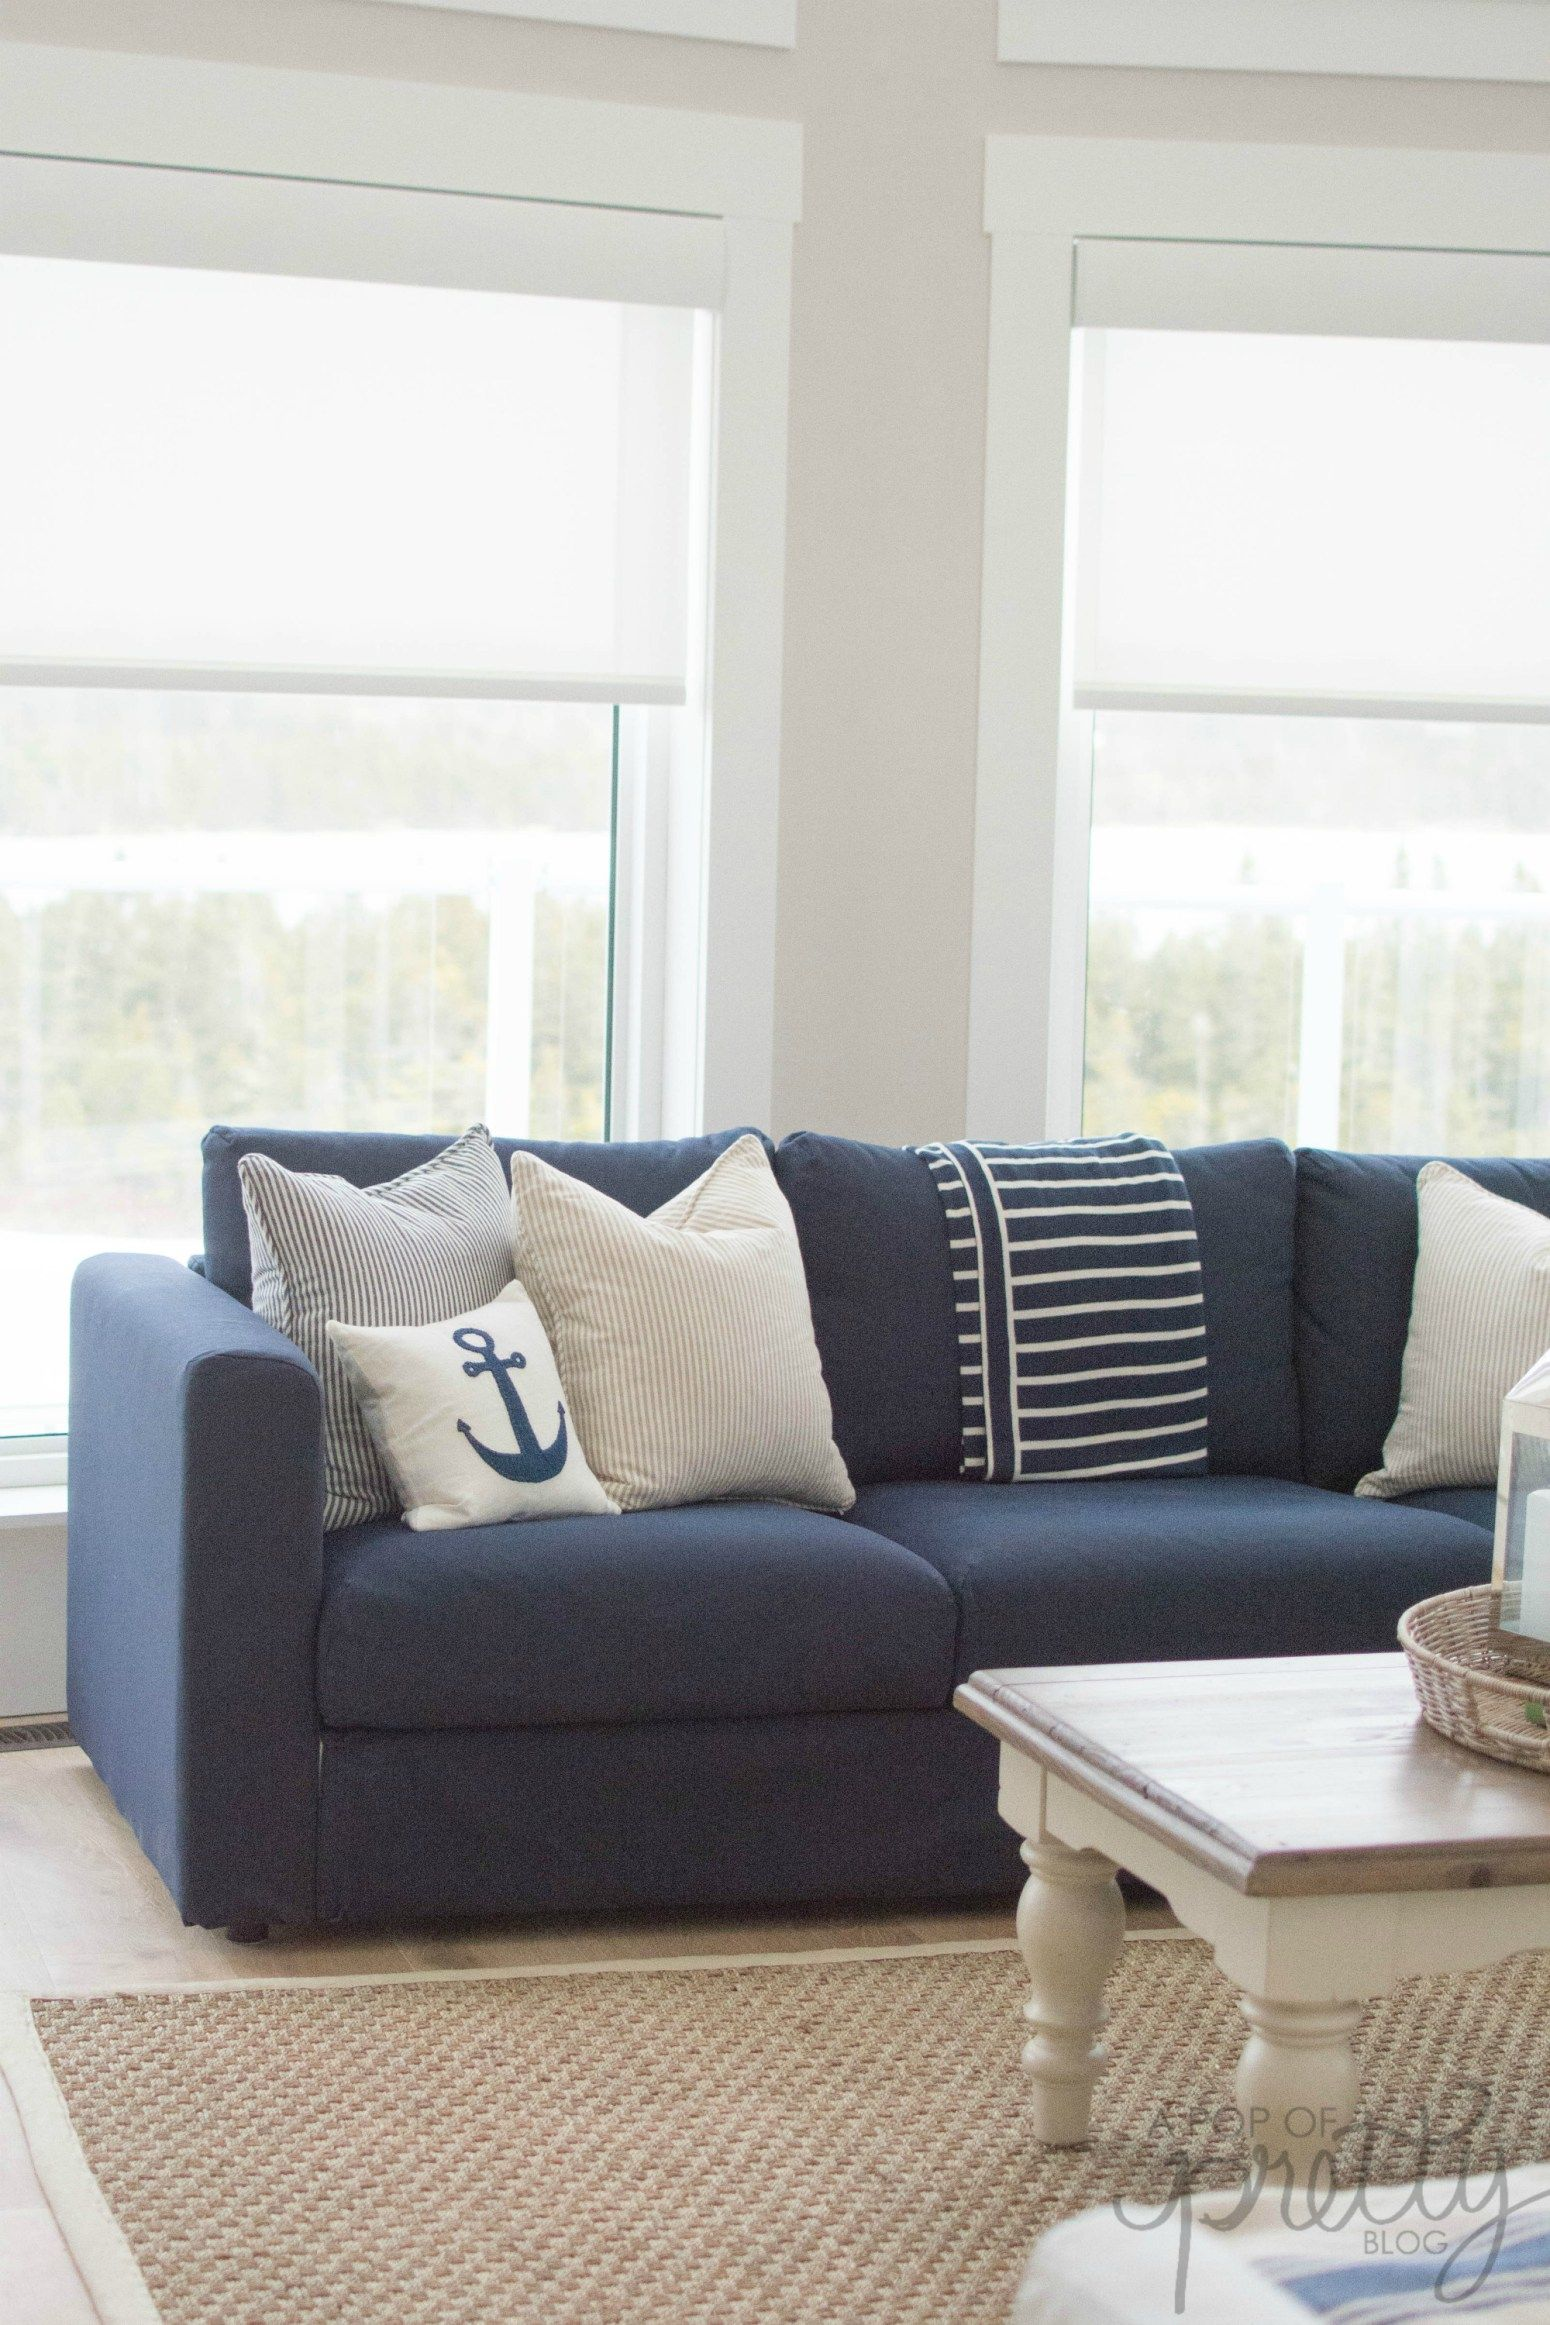 Ikea Sectional Sofa Covers Reclining Cheap Our Vimle Sofa: Initial Review | Naples Condo ...